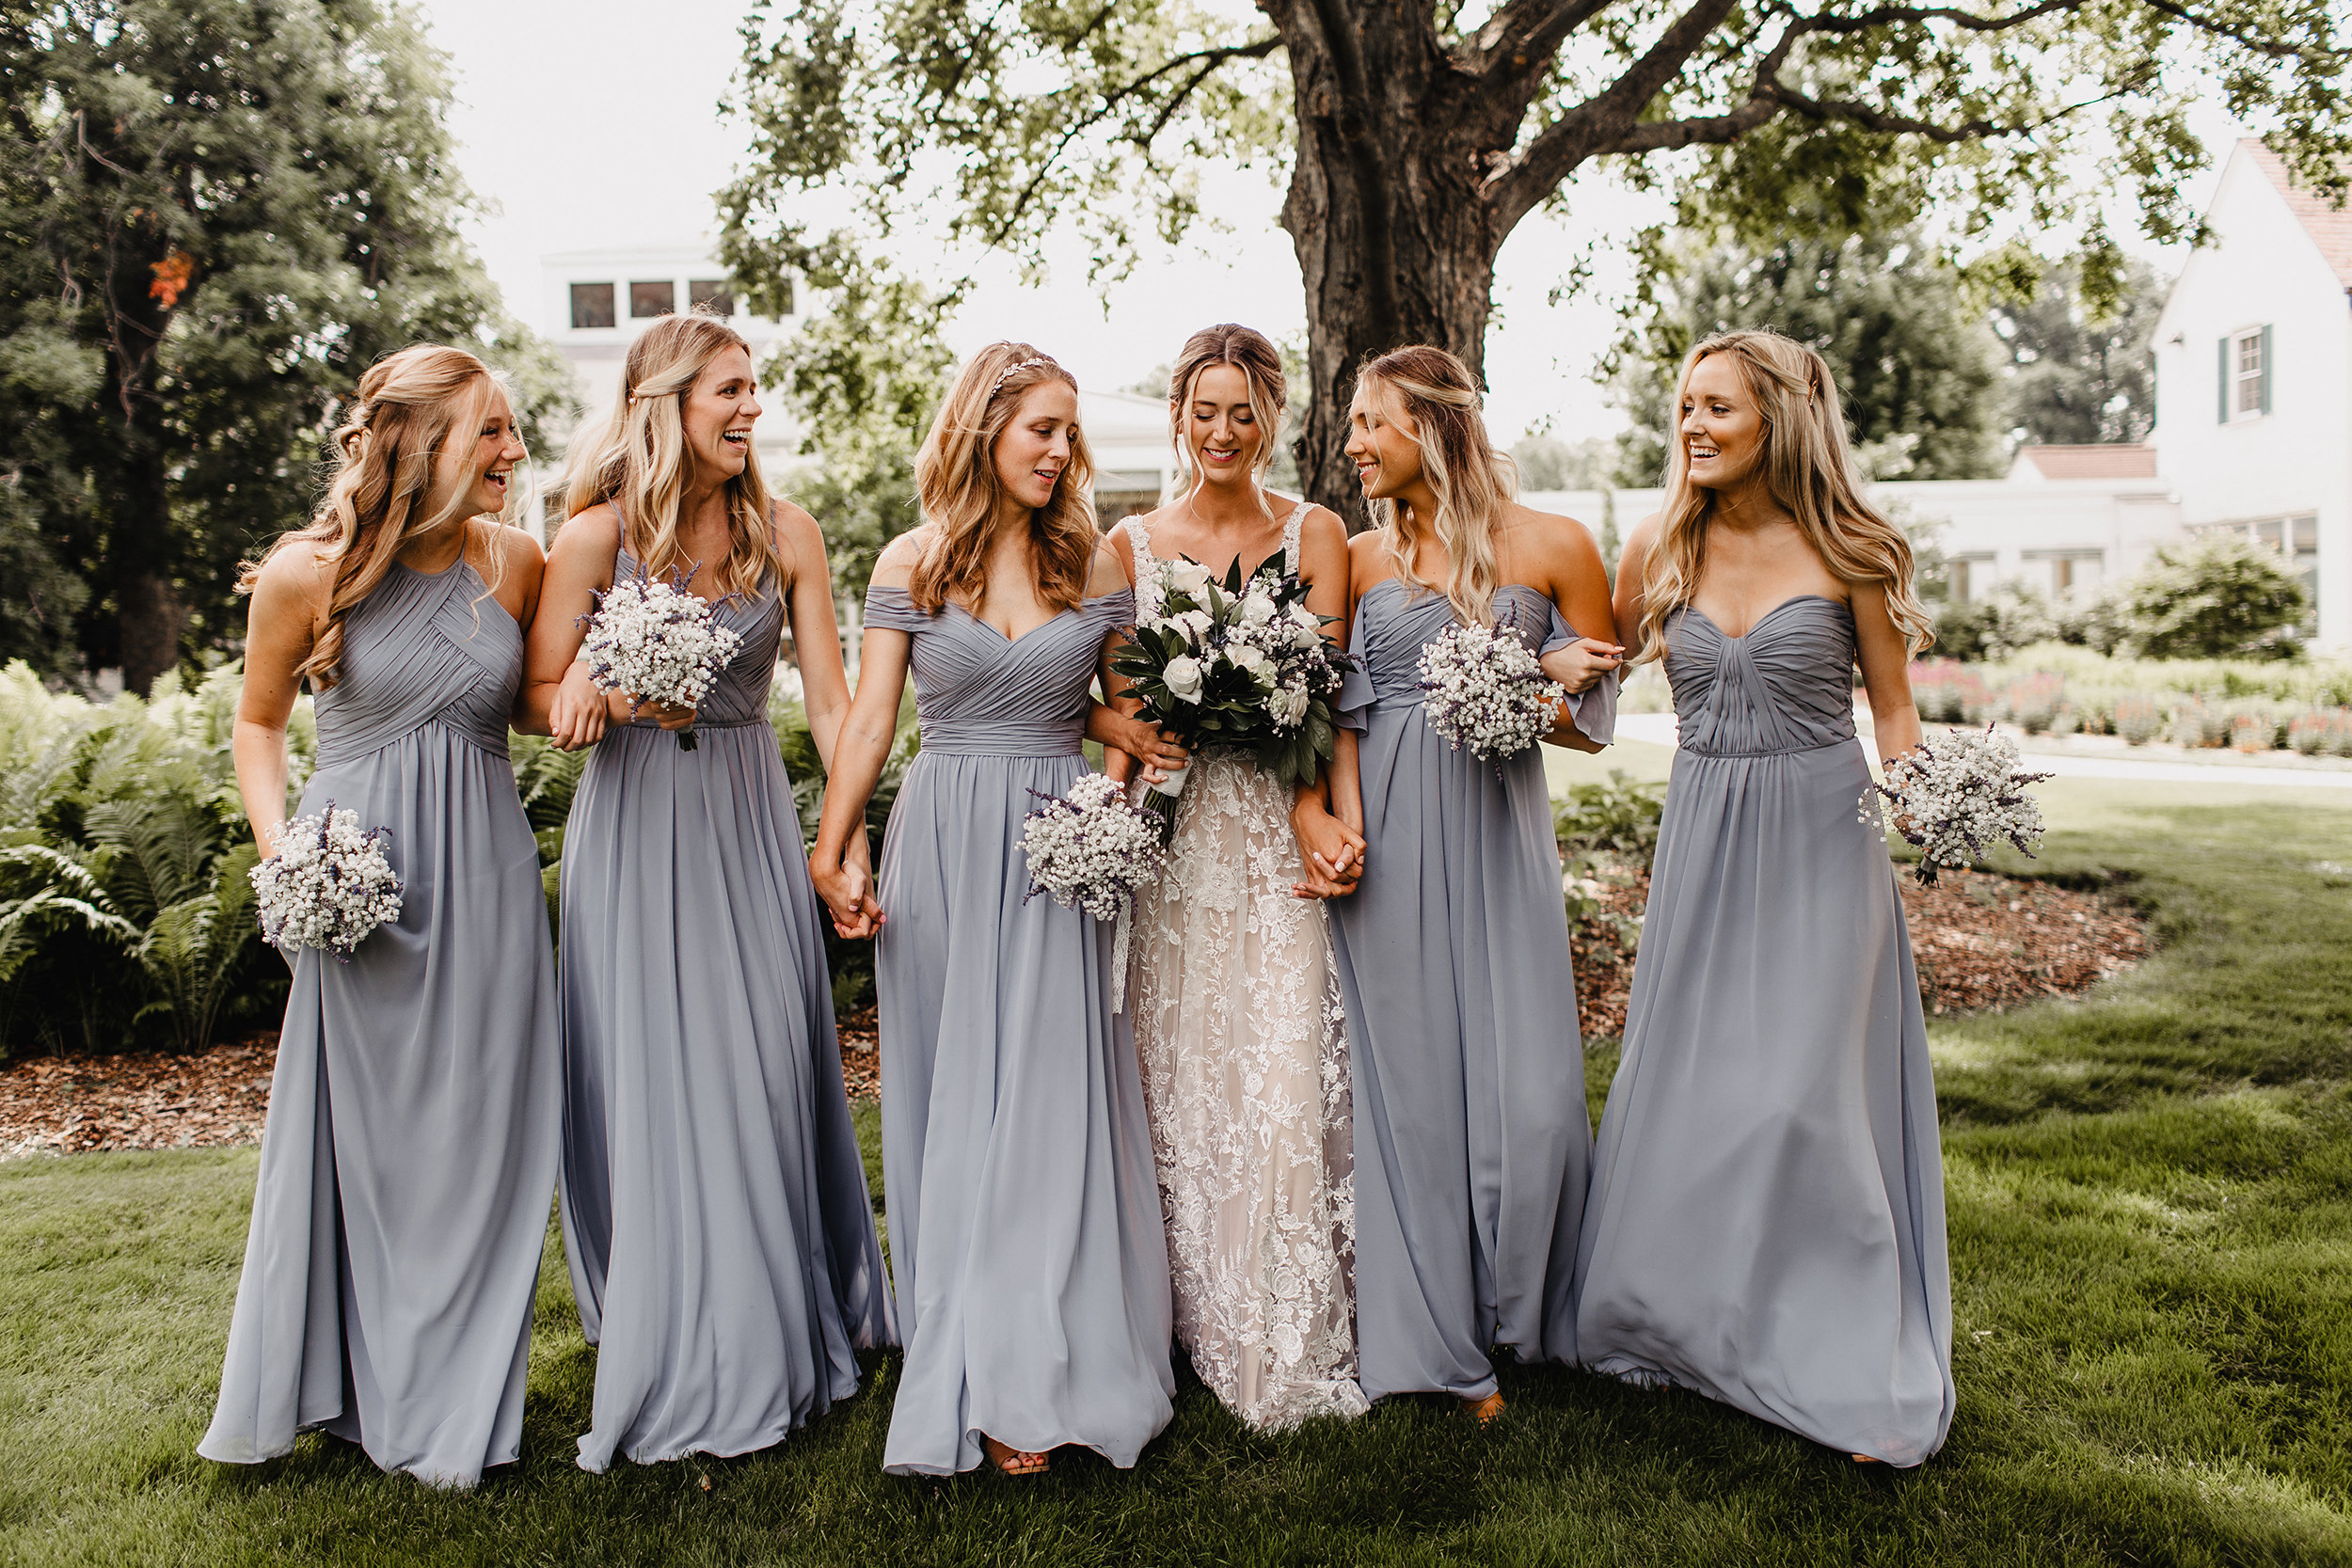 Phoebe's bridesmaids wore mixed MoriLee styles